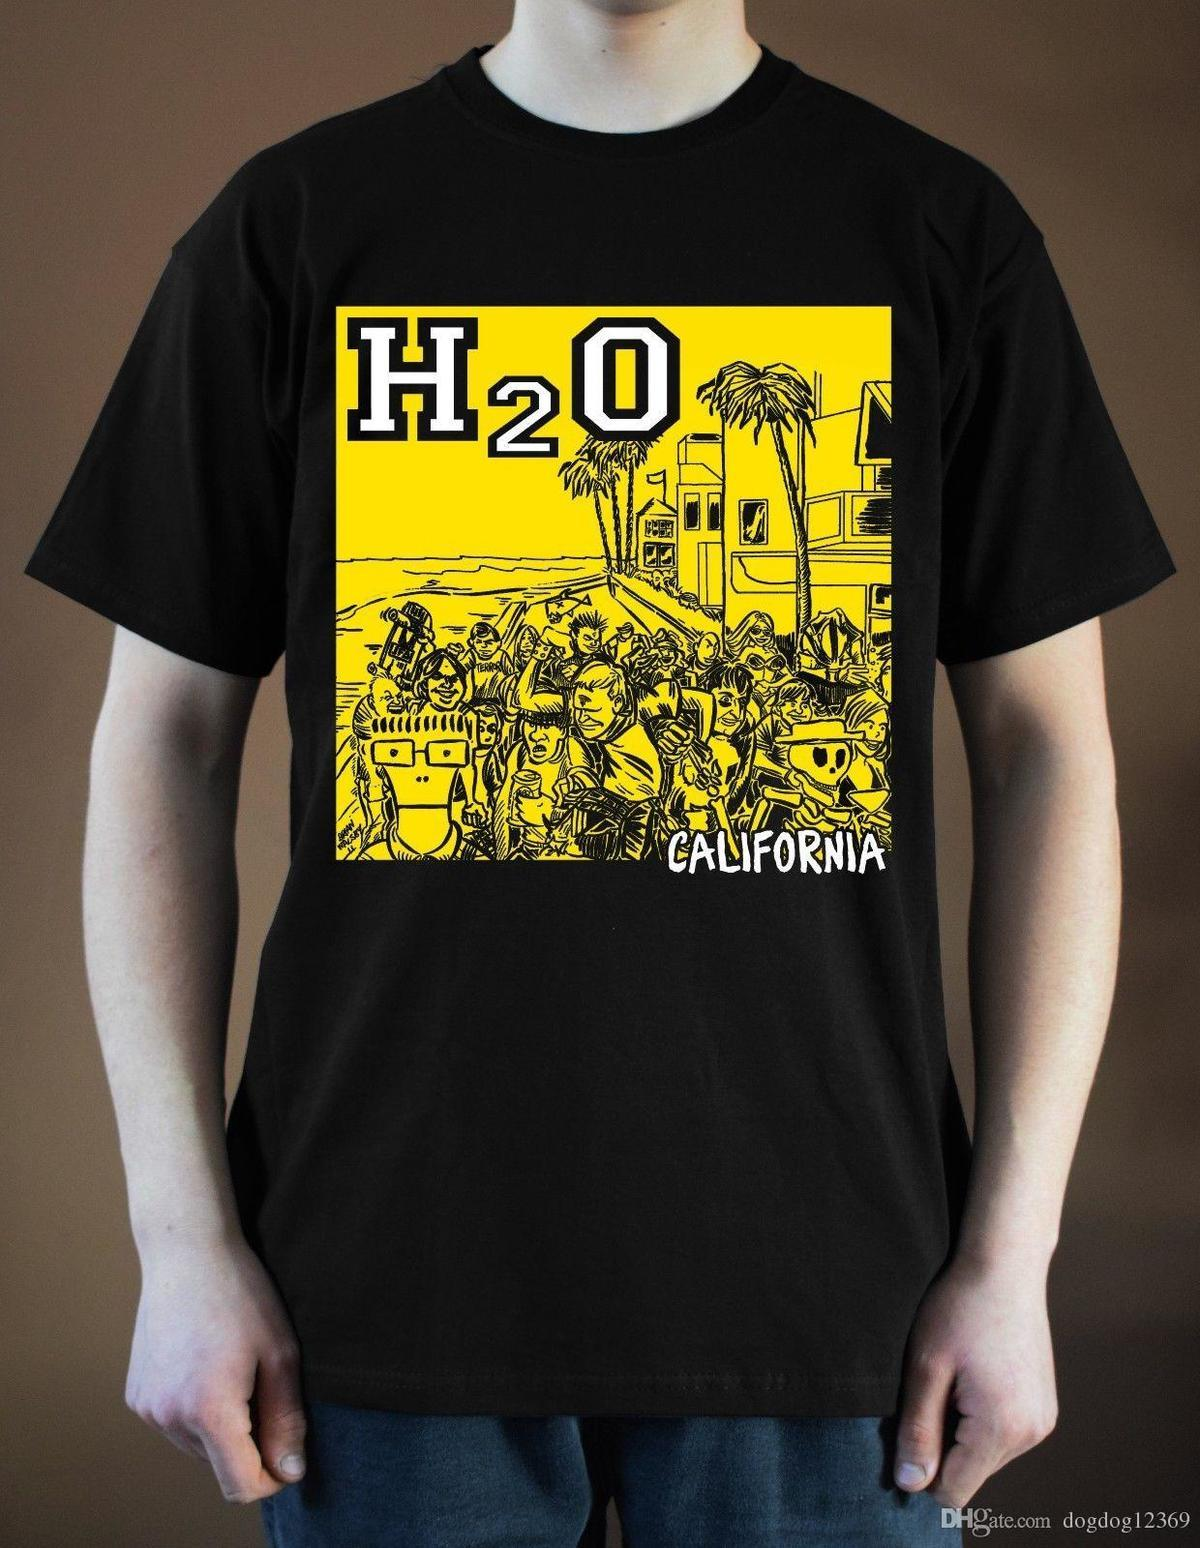 H2O California T-Shirt ver  1 Album Cover Punk Rock (Black)